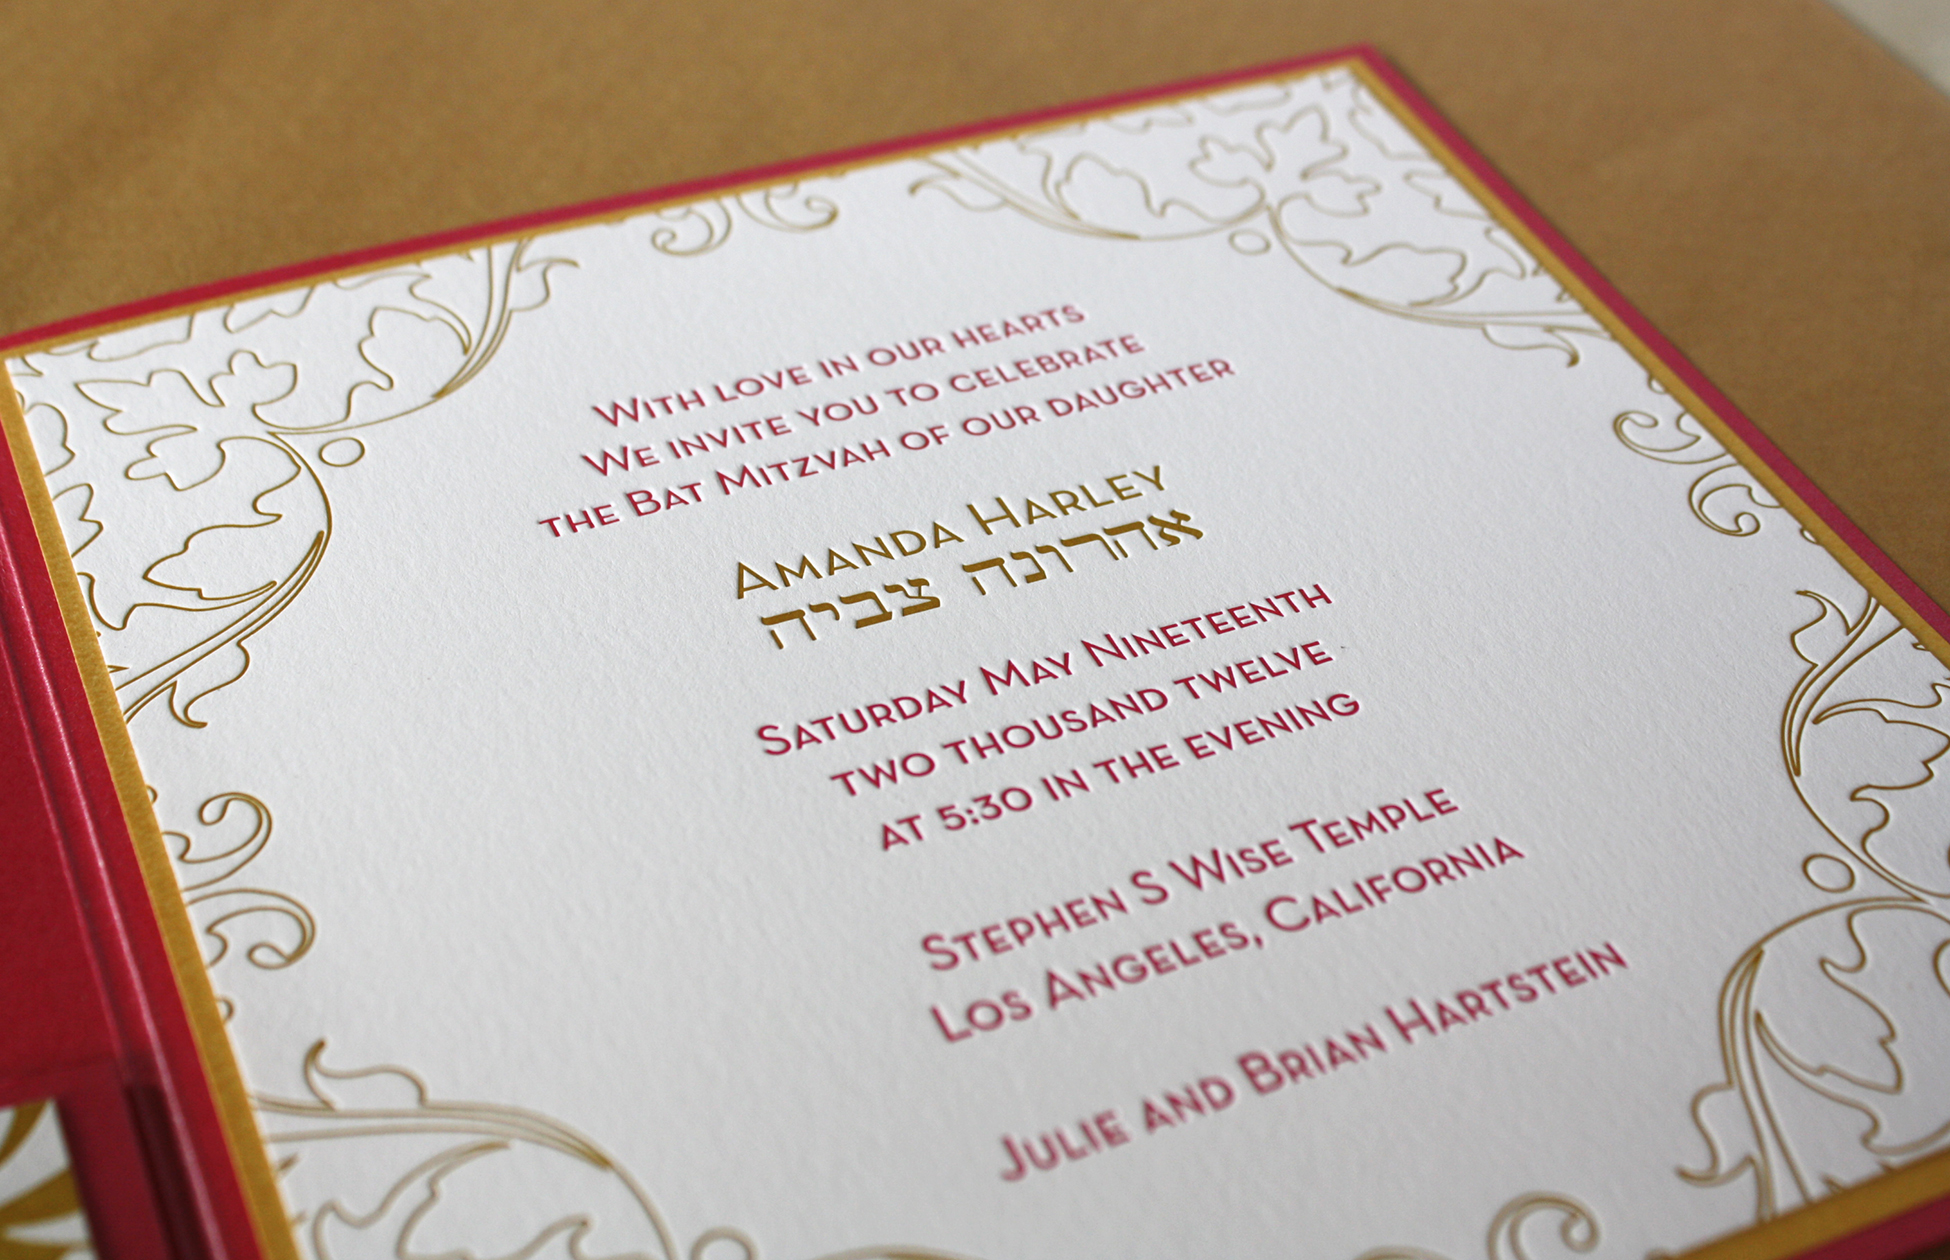 San Francisco Bay Area letterpress printing & graphic design blog ...